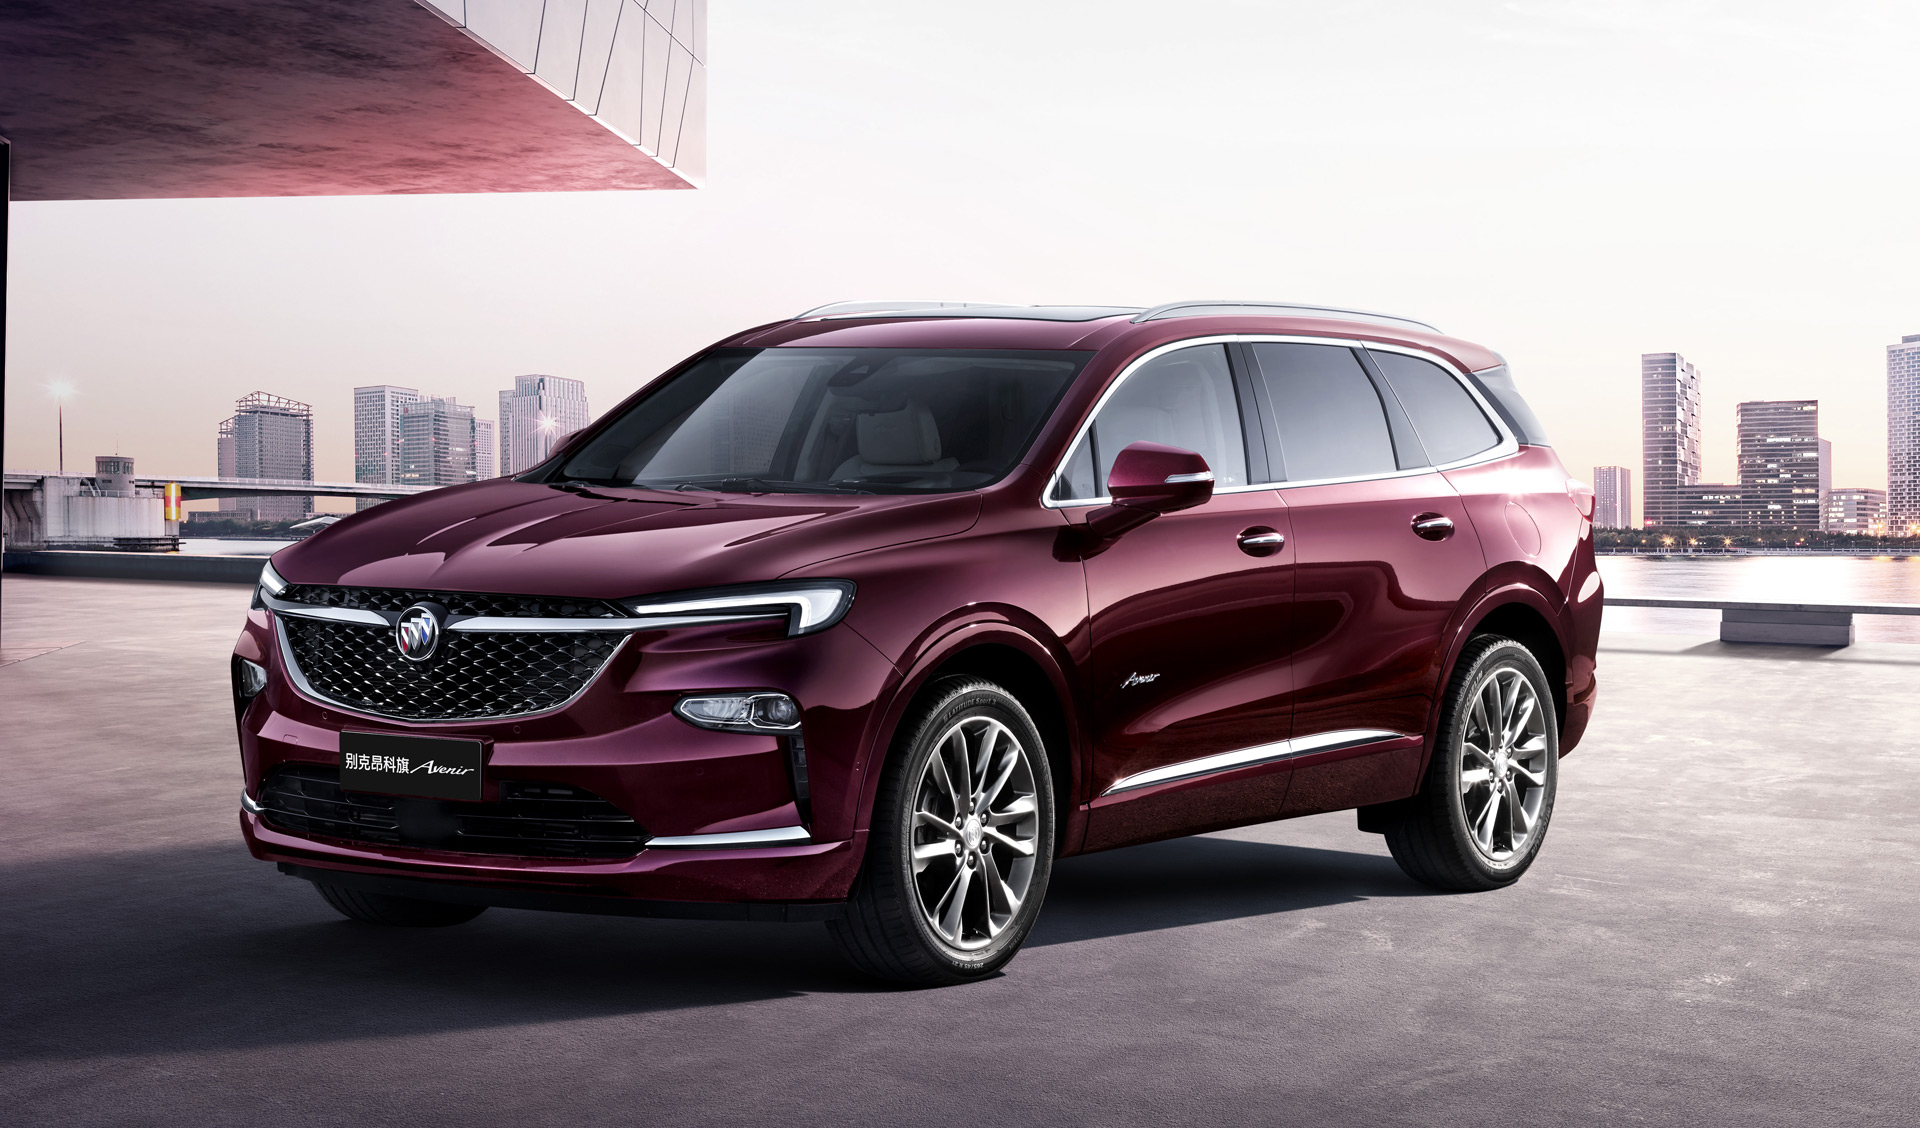 Mystery Buick 3-Row Crossover Revealed As Chinese-Market Enclave New 2021 Buick Enclave Interior Dimensions, Images, Inventory